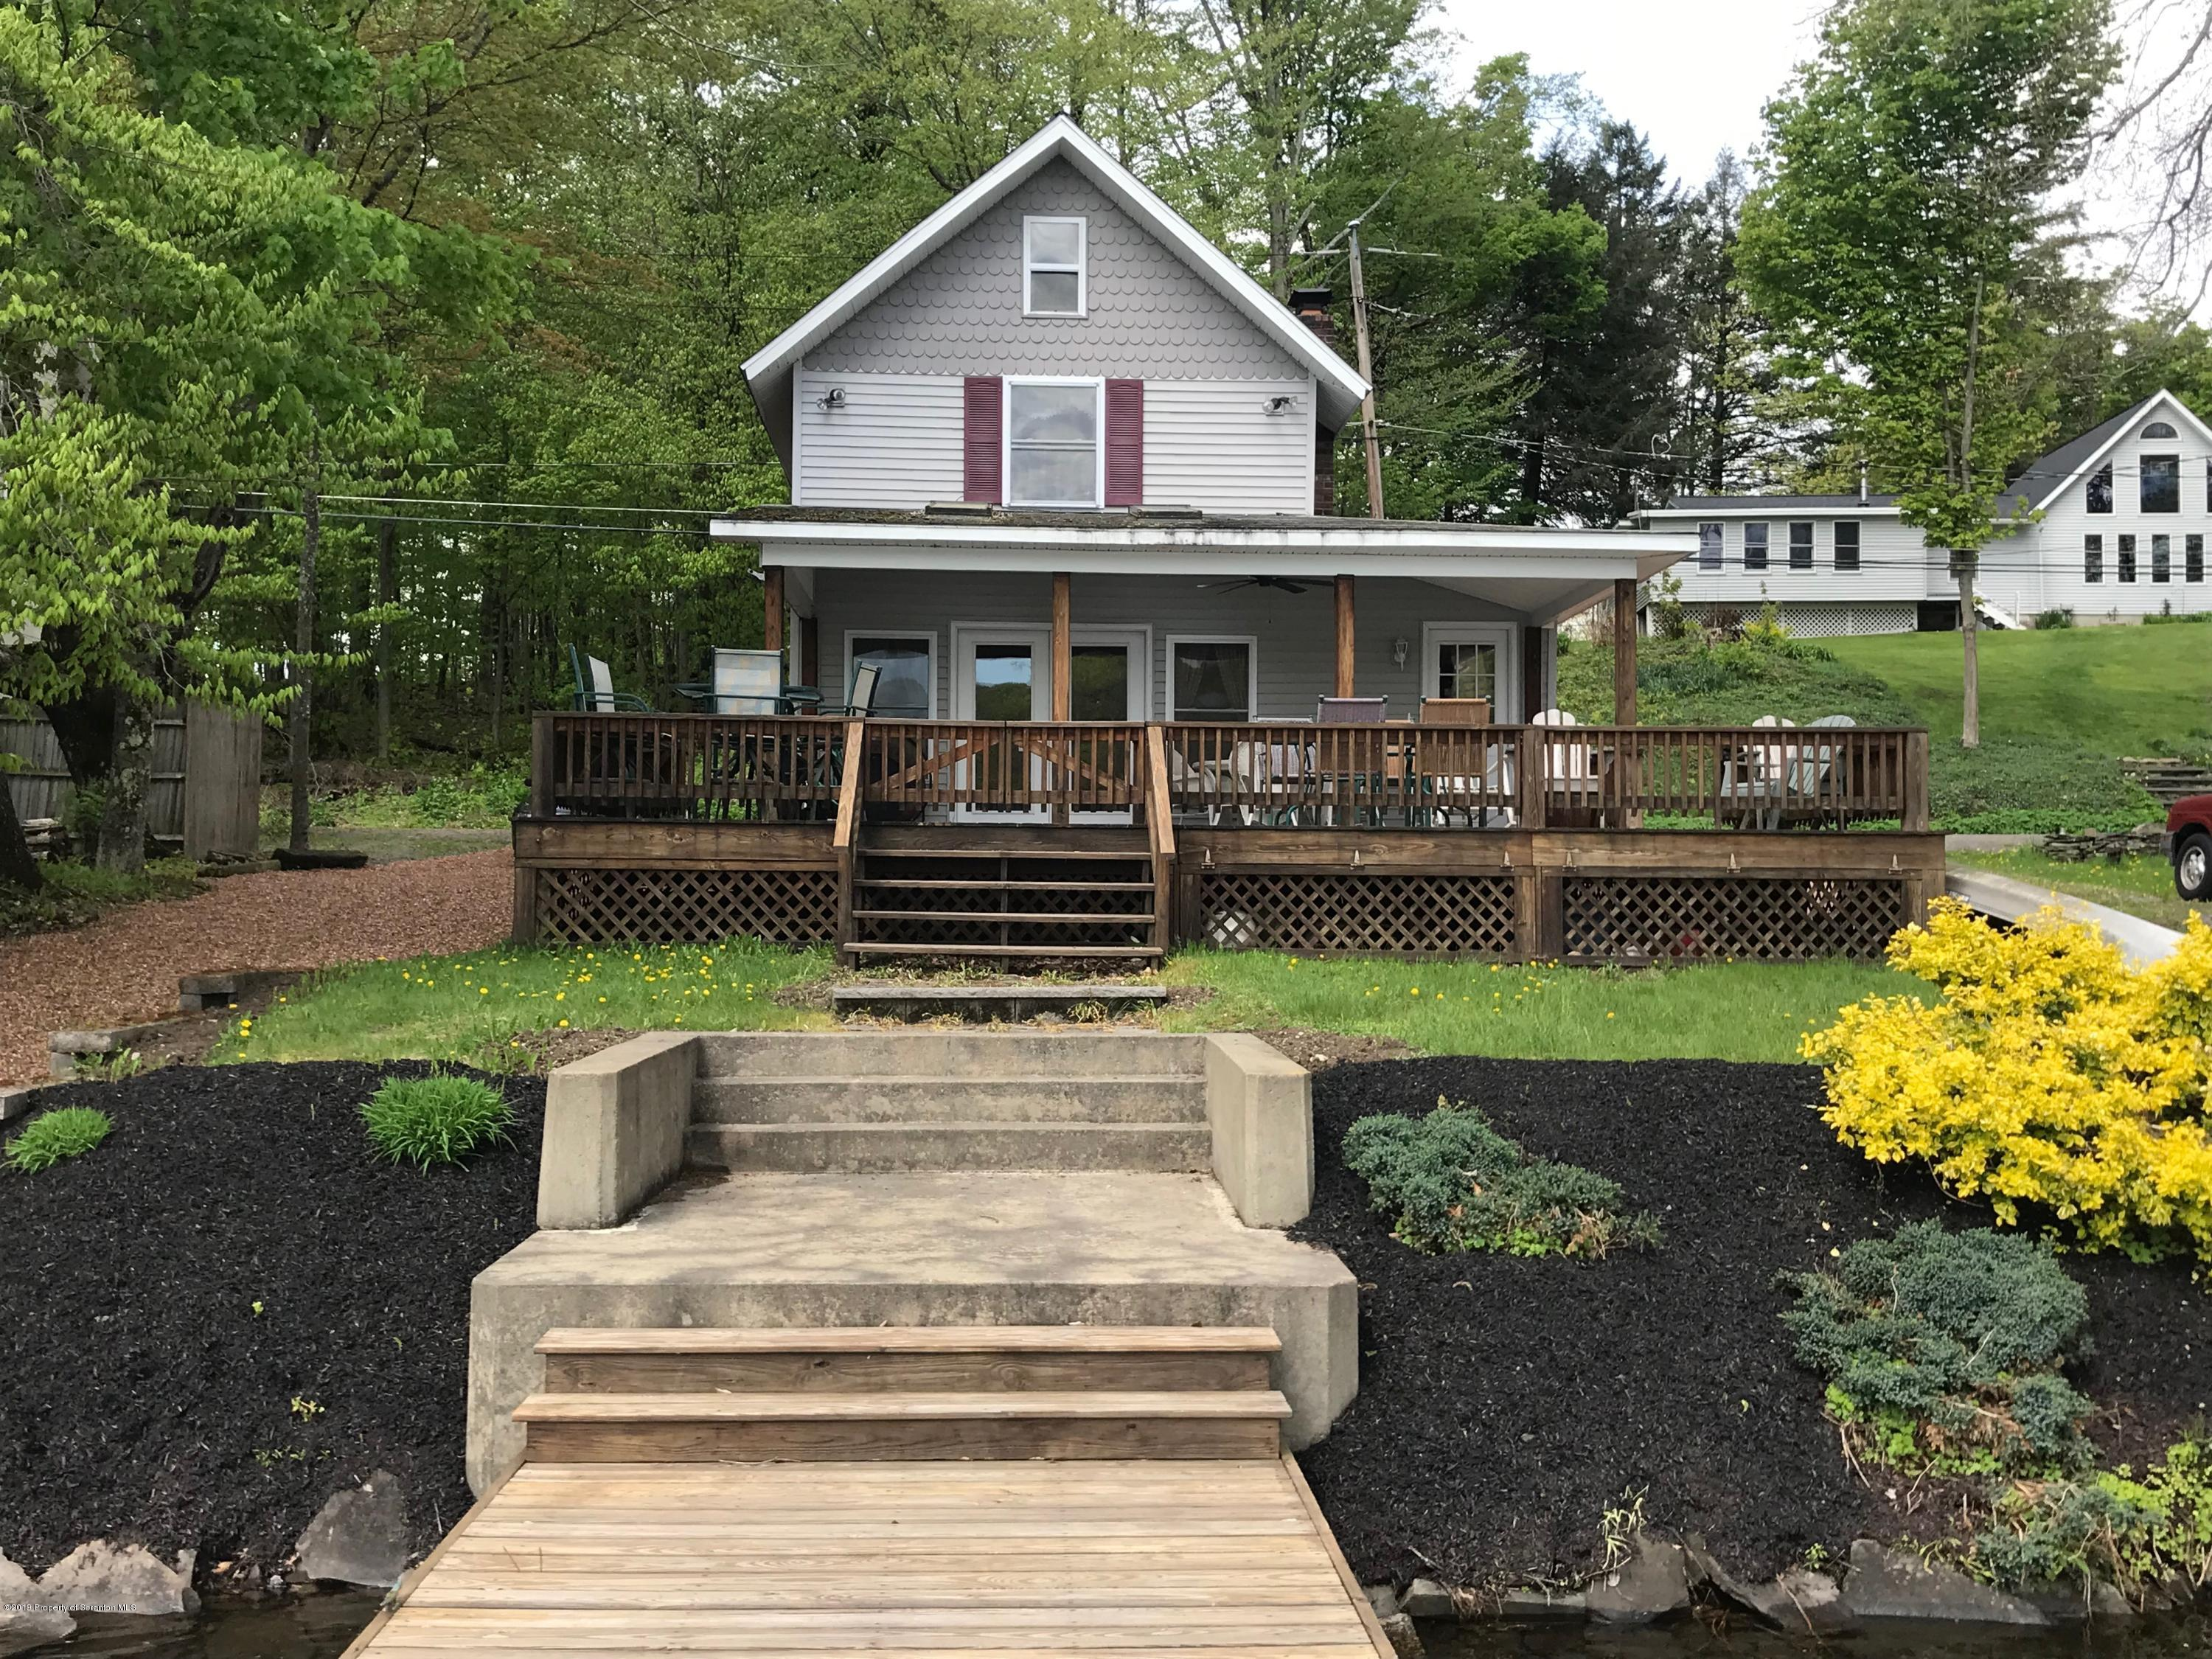 1242 Heart Lake Rd, Montrose, Pennsylvania 18801, 3 Bedrooms Bedrooms, 5 Rooms Rooms,2 BathroomsBathrooms,Single Family,For Sale,Heart Lake,19-2188